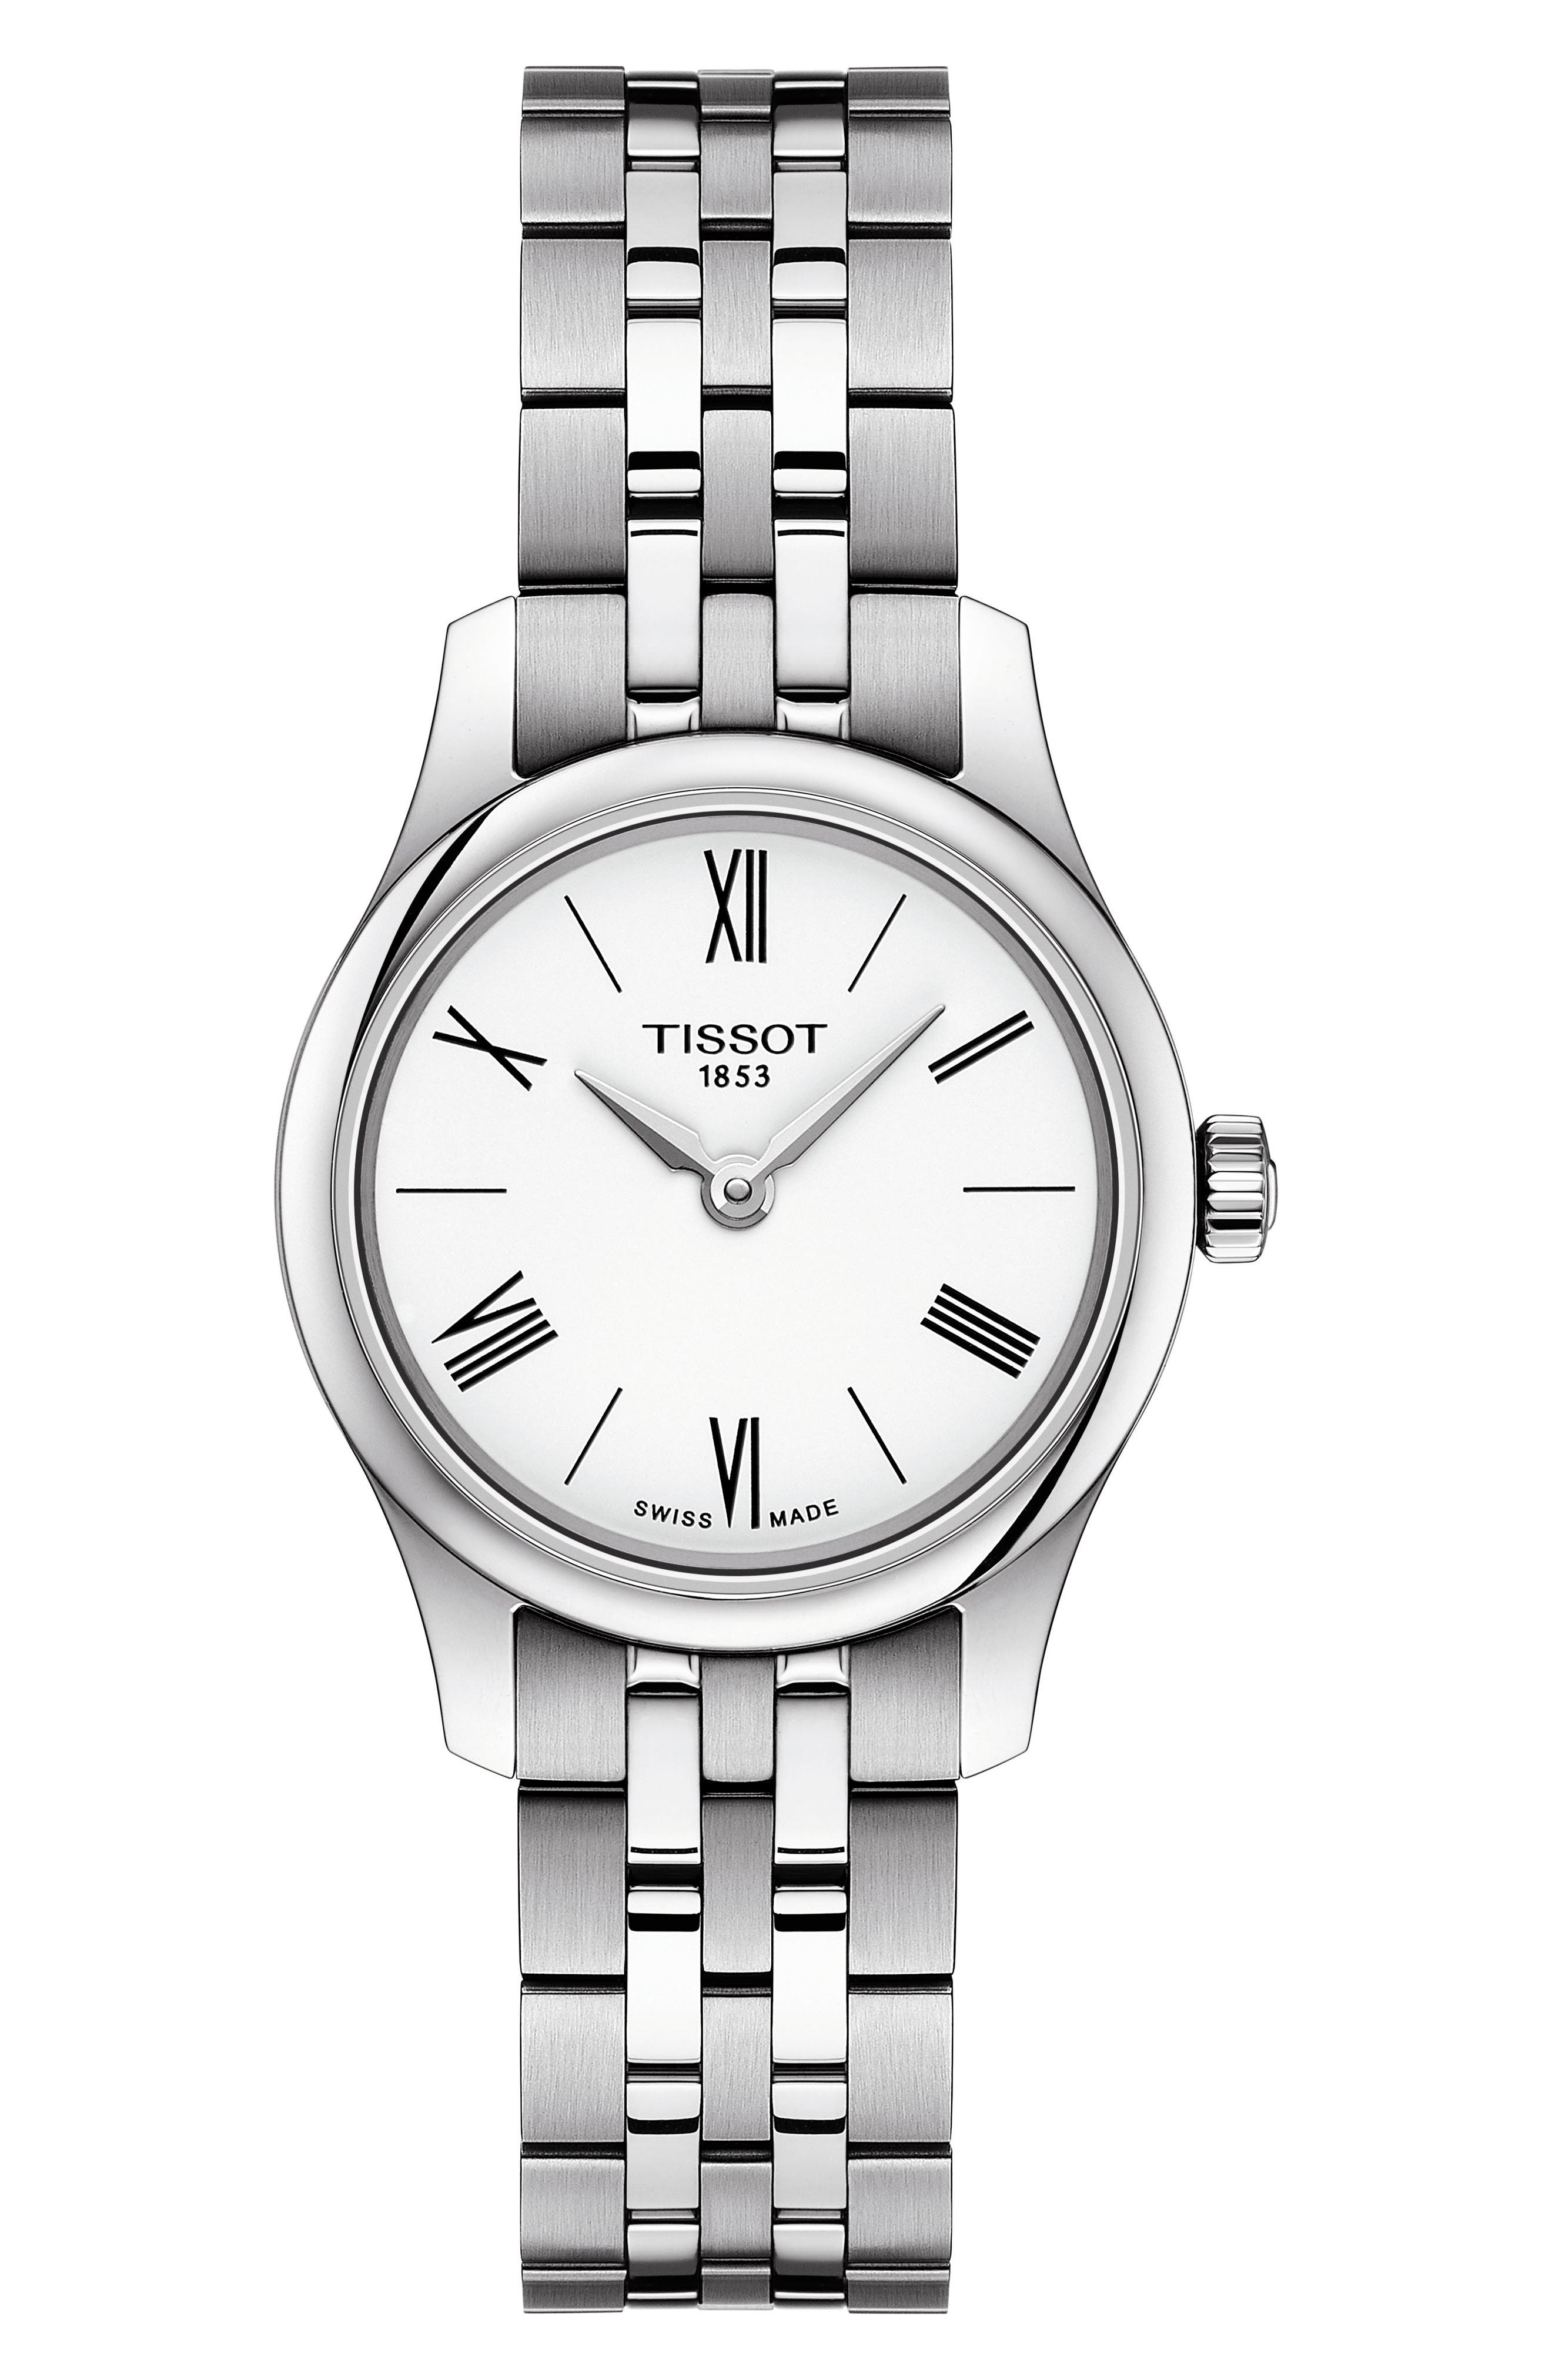 TISSOT Tradition 5.5 Lady Round Bracelet Watch, 25Mm in Silver/ White/ Silver